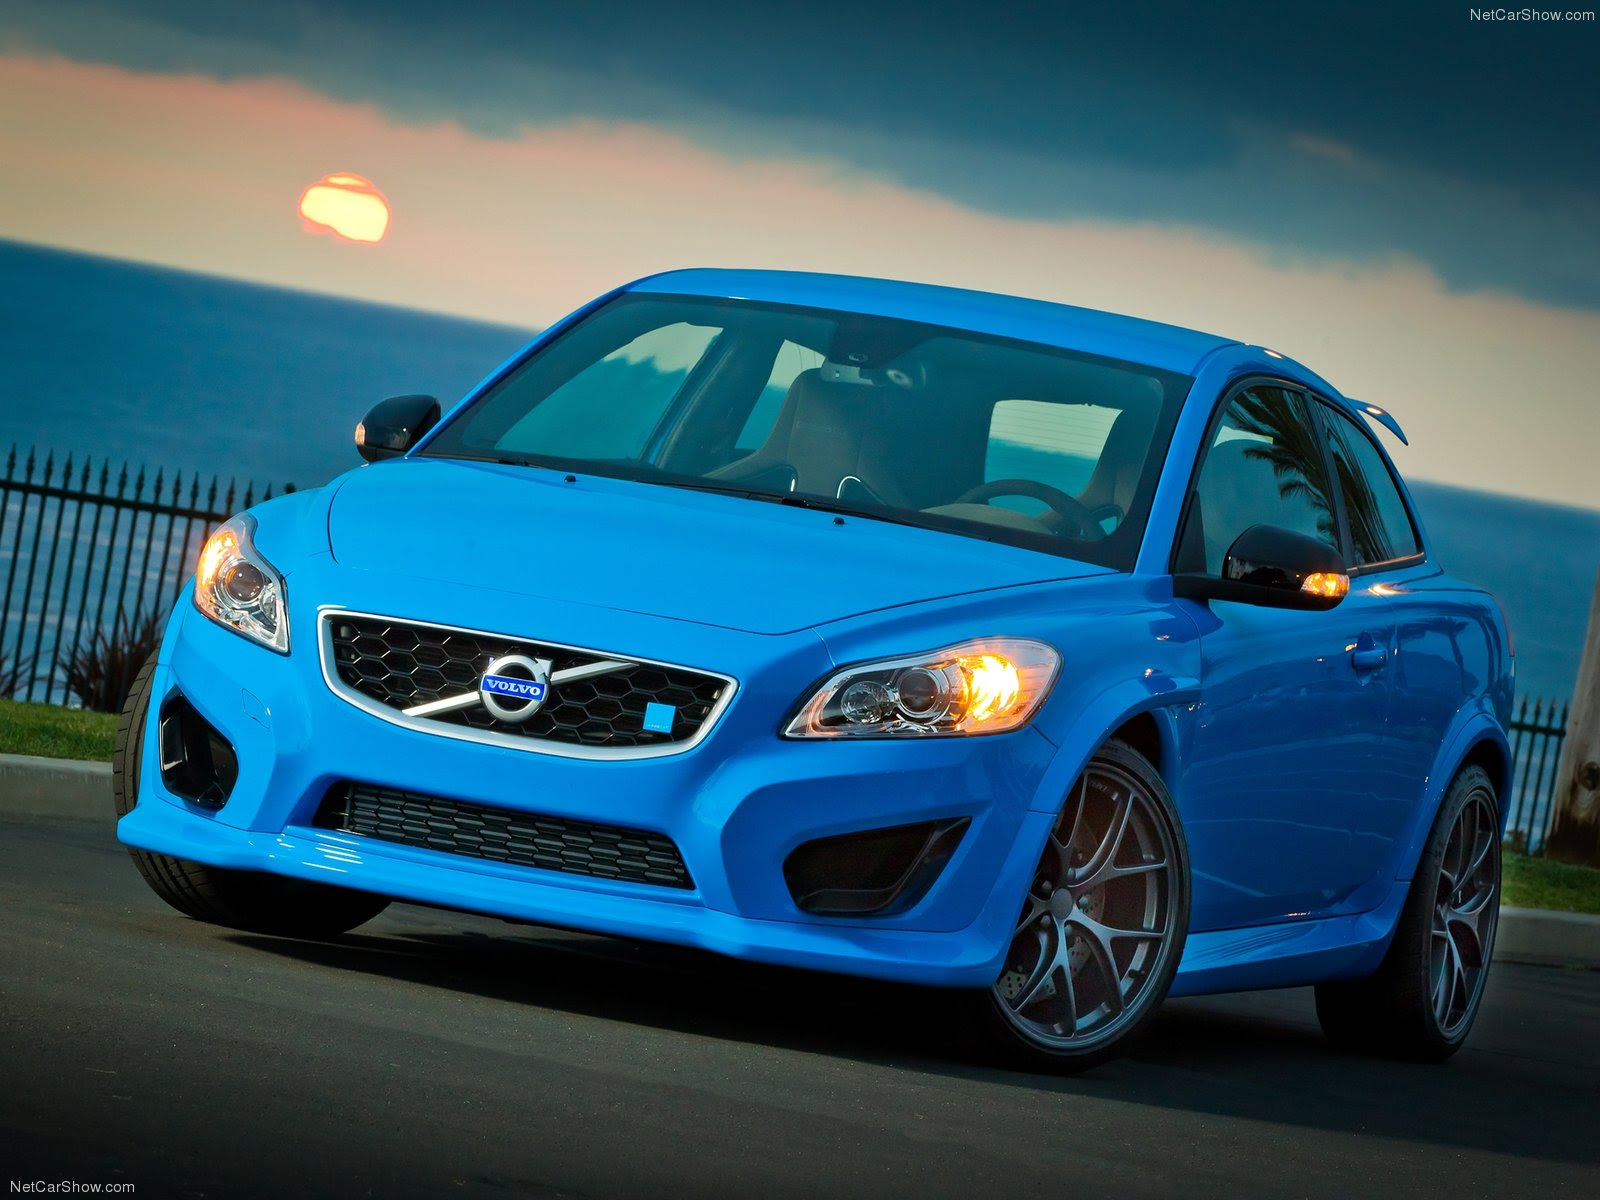 Volvo C30 R Design Wallpaper Volvo Cars 33 Wallpapers \u2013 HD Wallpapers